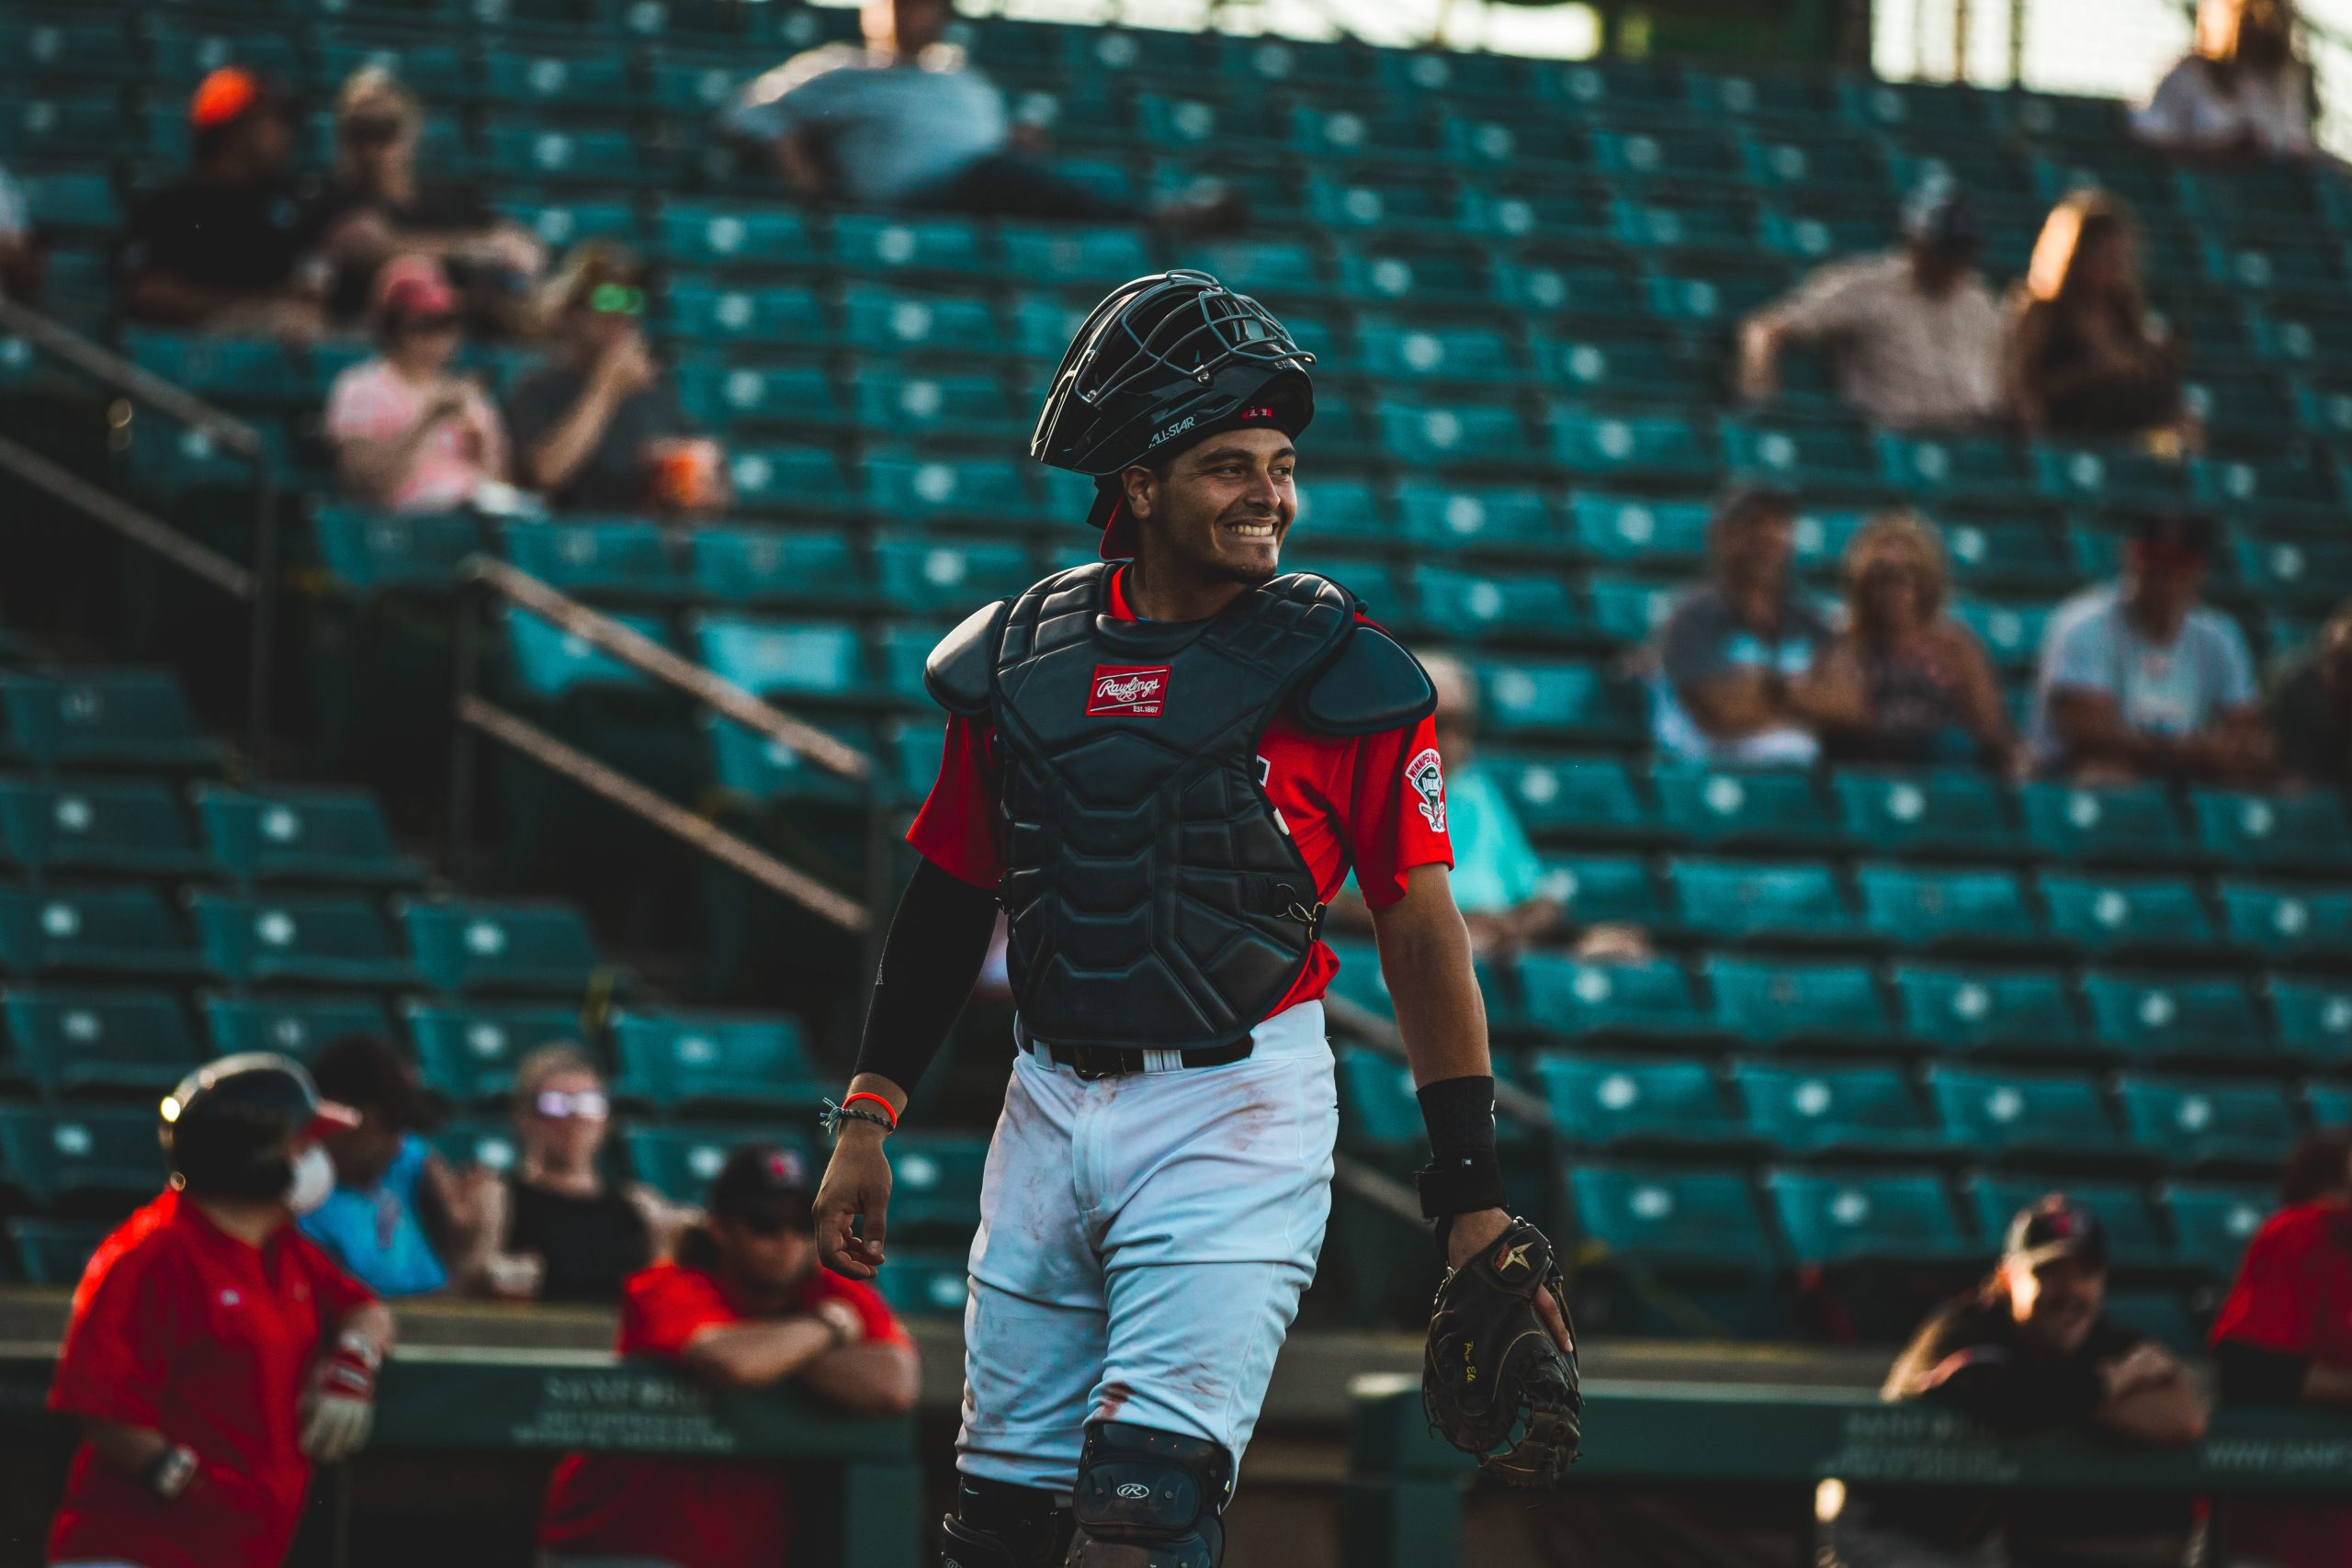 Canaries Acquire Roy Morales from Goldeyes